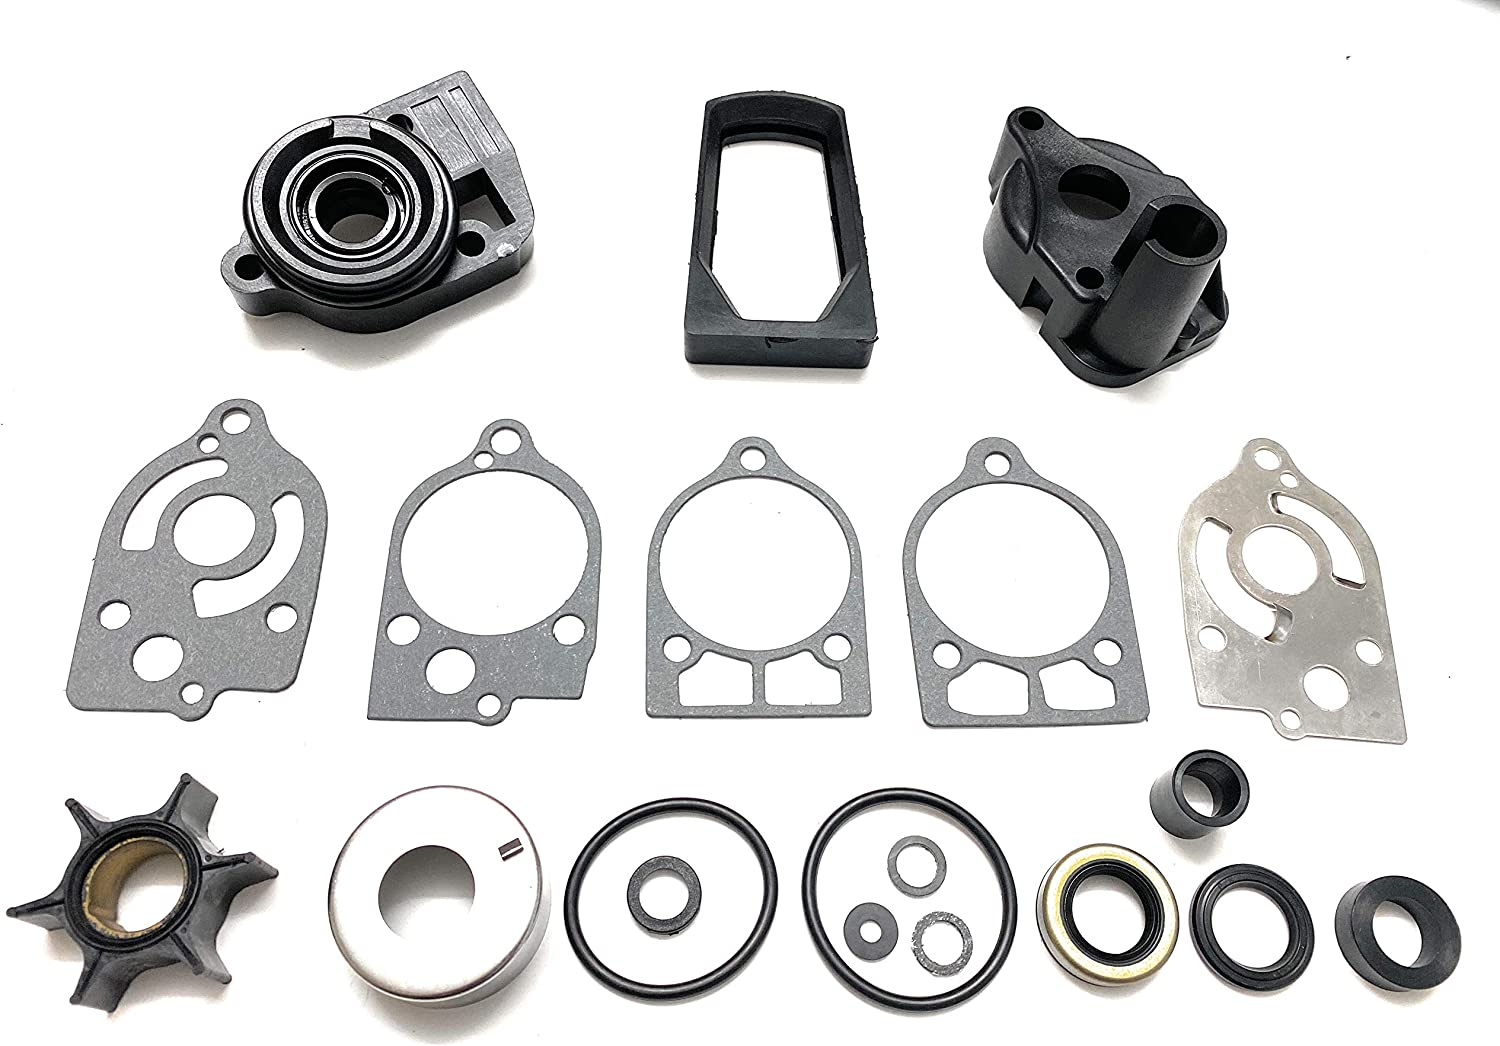 Water Pump Impeller Kit for Mercury 30 35 40 45 50 60 65 70 Hp Replaces 46-77177A3, Sierra 18-3324